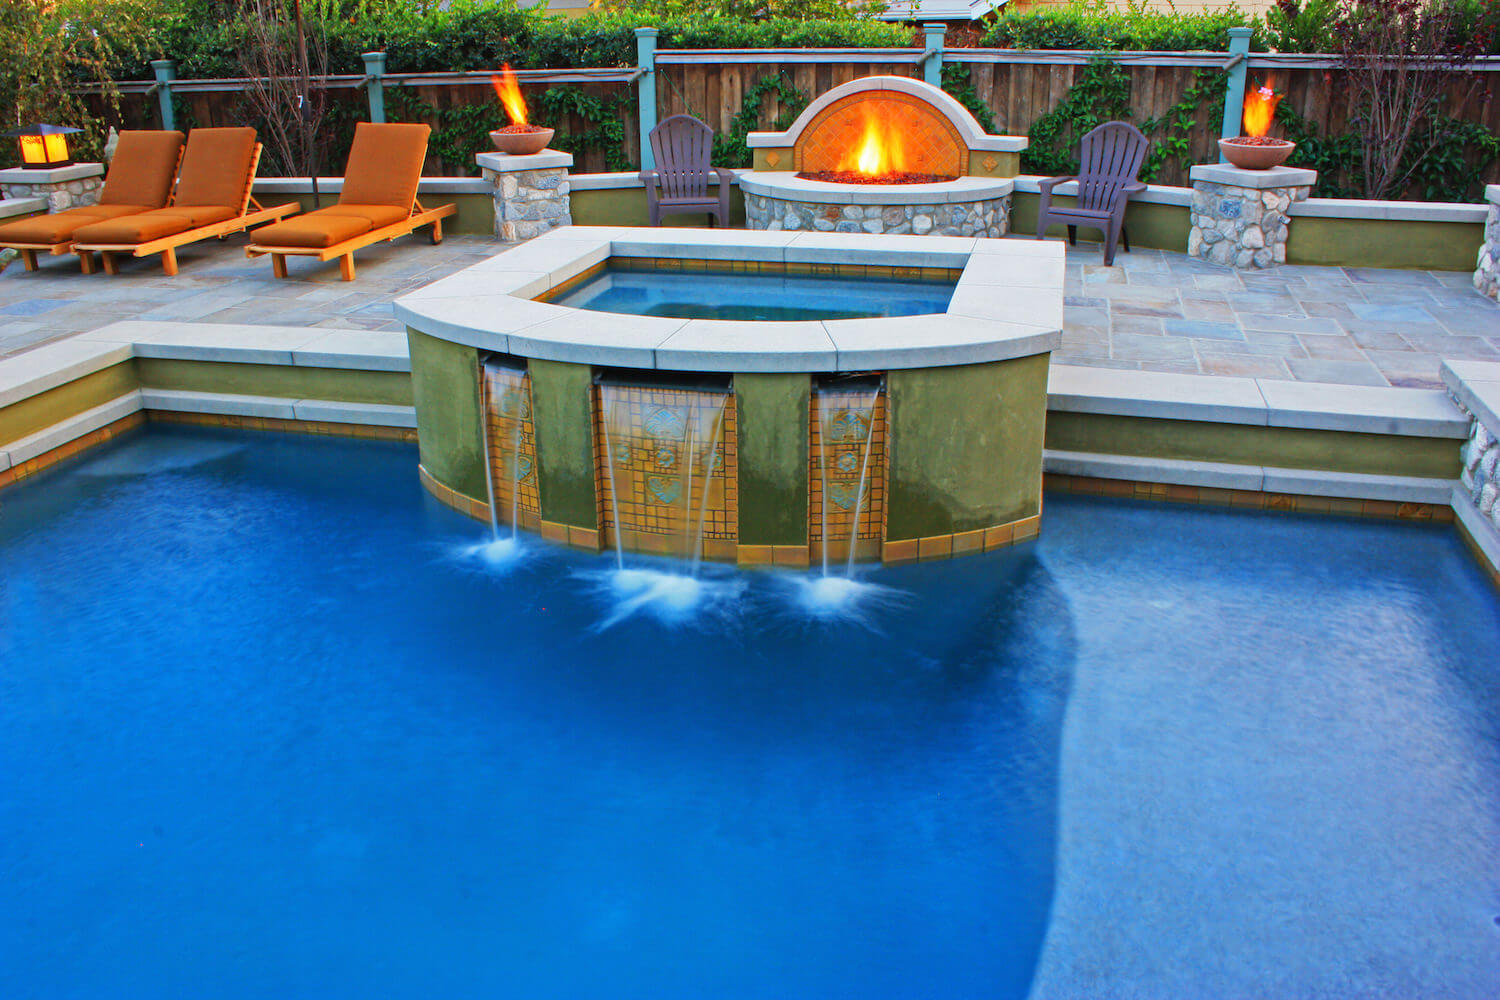 Spa #1 by Southern California Pools